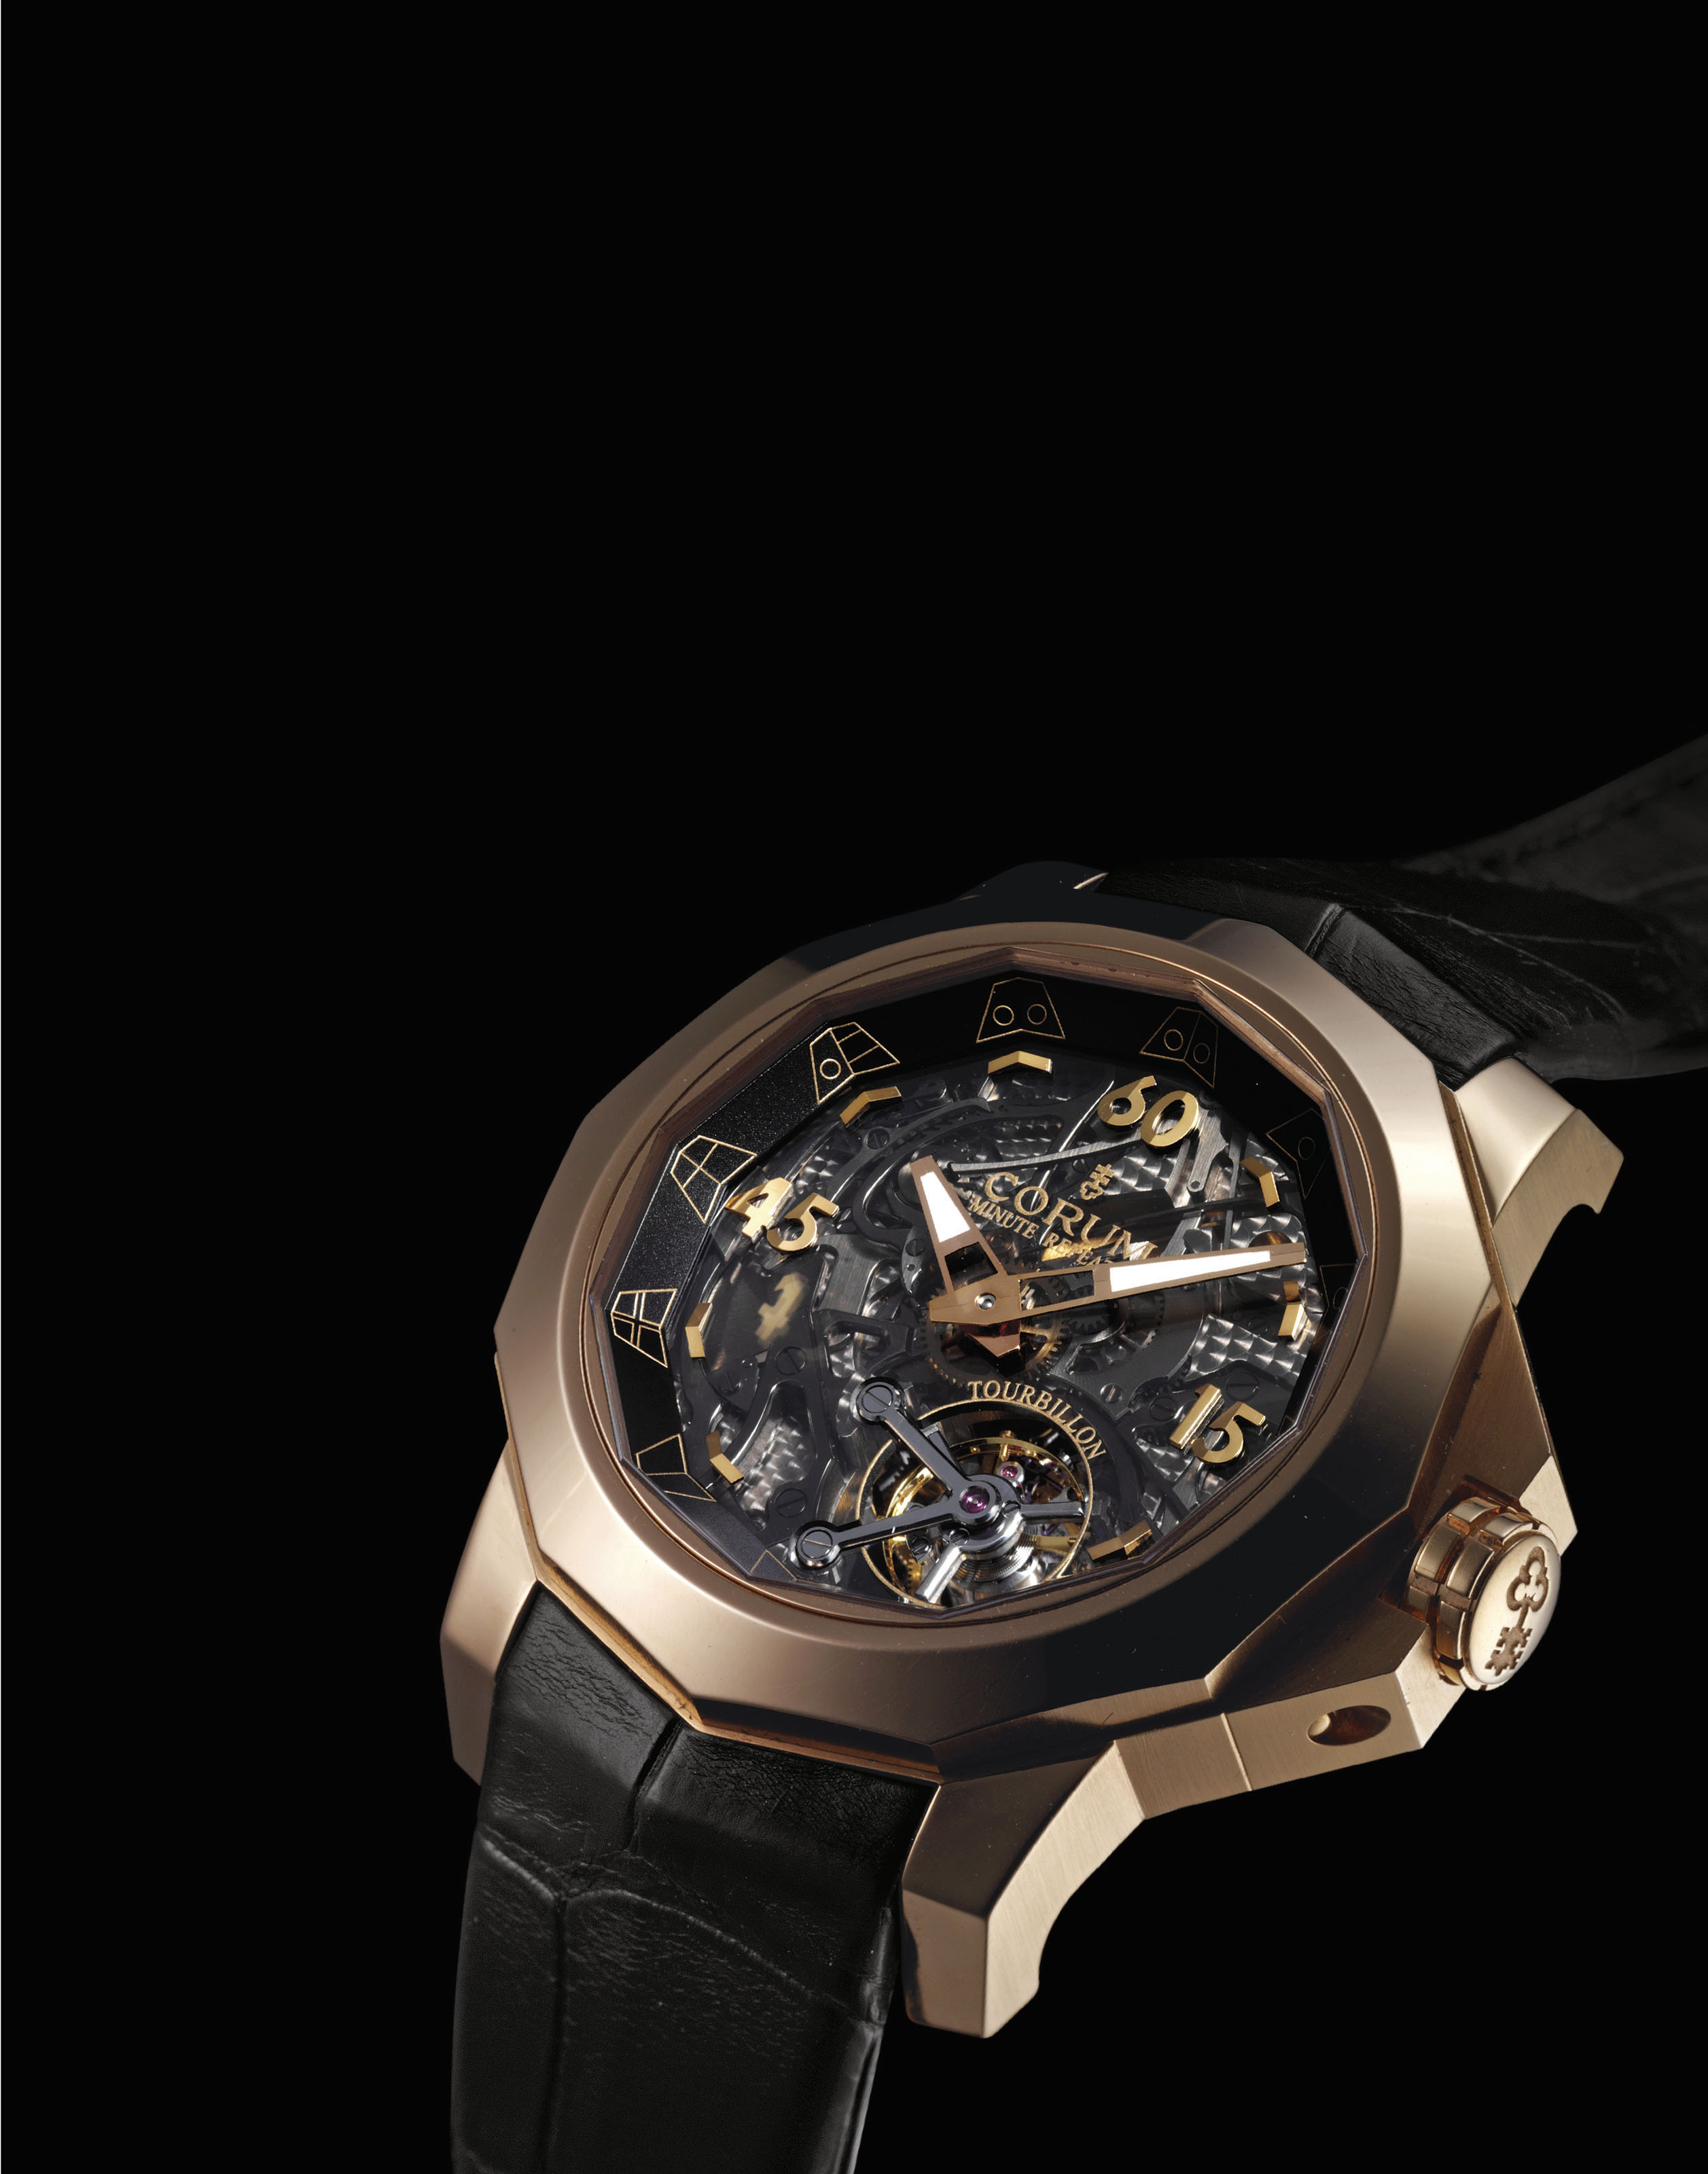 CORUM. A RARE, UNUSUAL AND LARGE 18K PINK GOLD LIMITED EDITION SEMI-SKELETONISED MINUTE REPEATING TOURBILLON WRISTWATCH